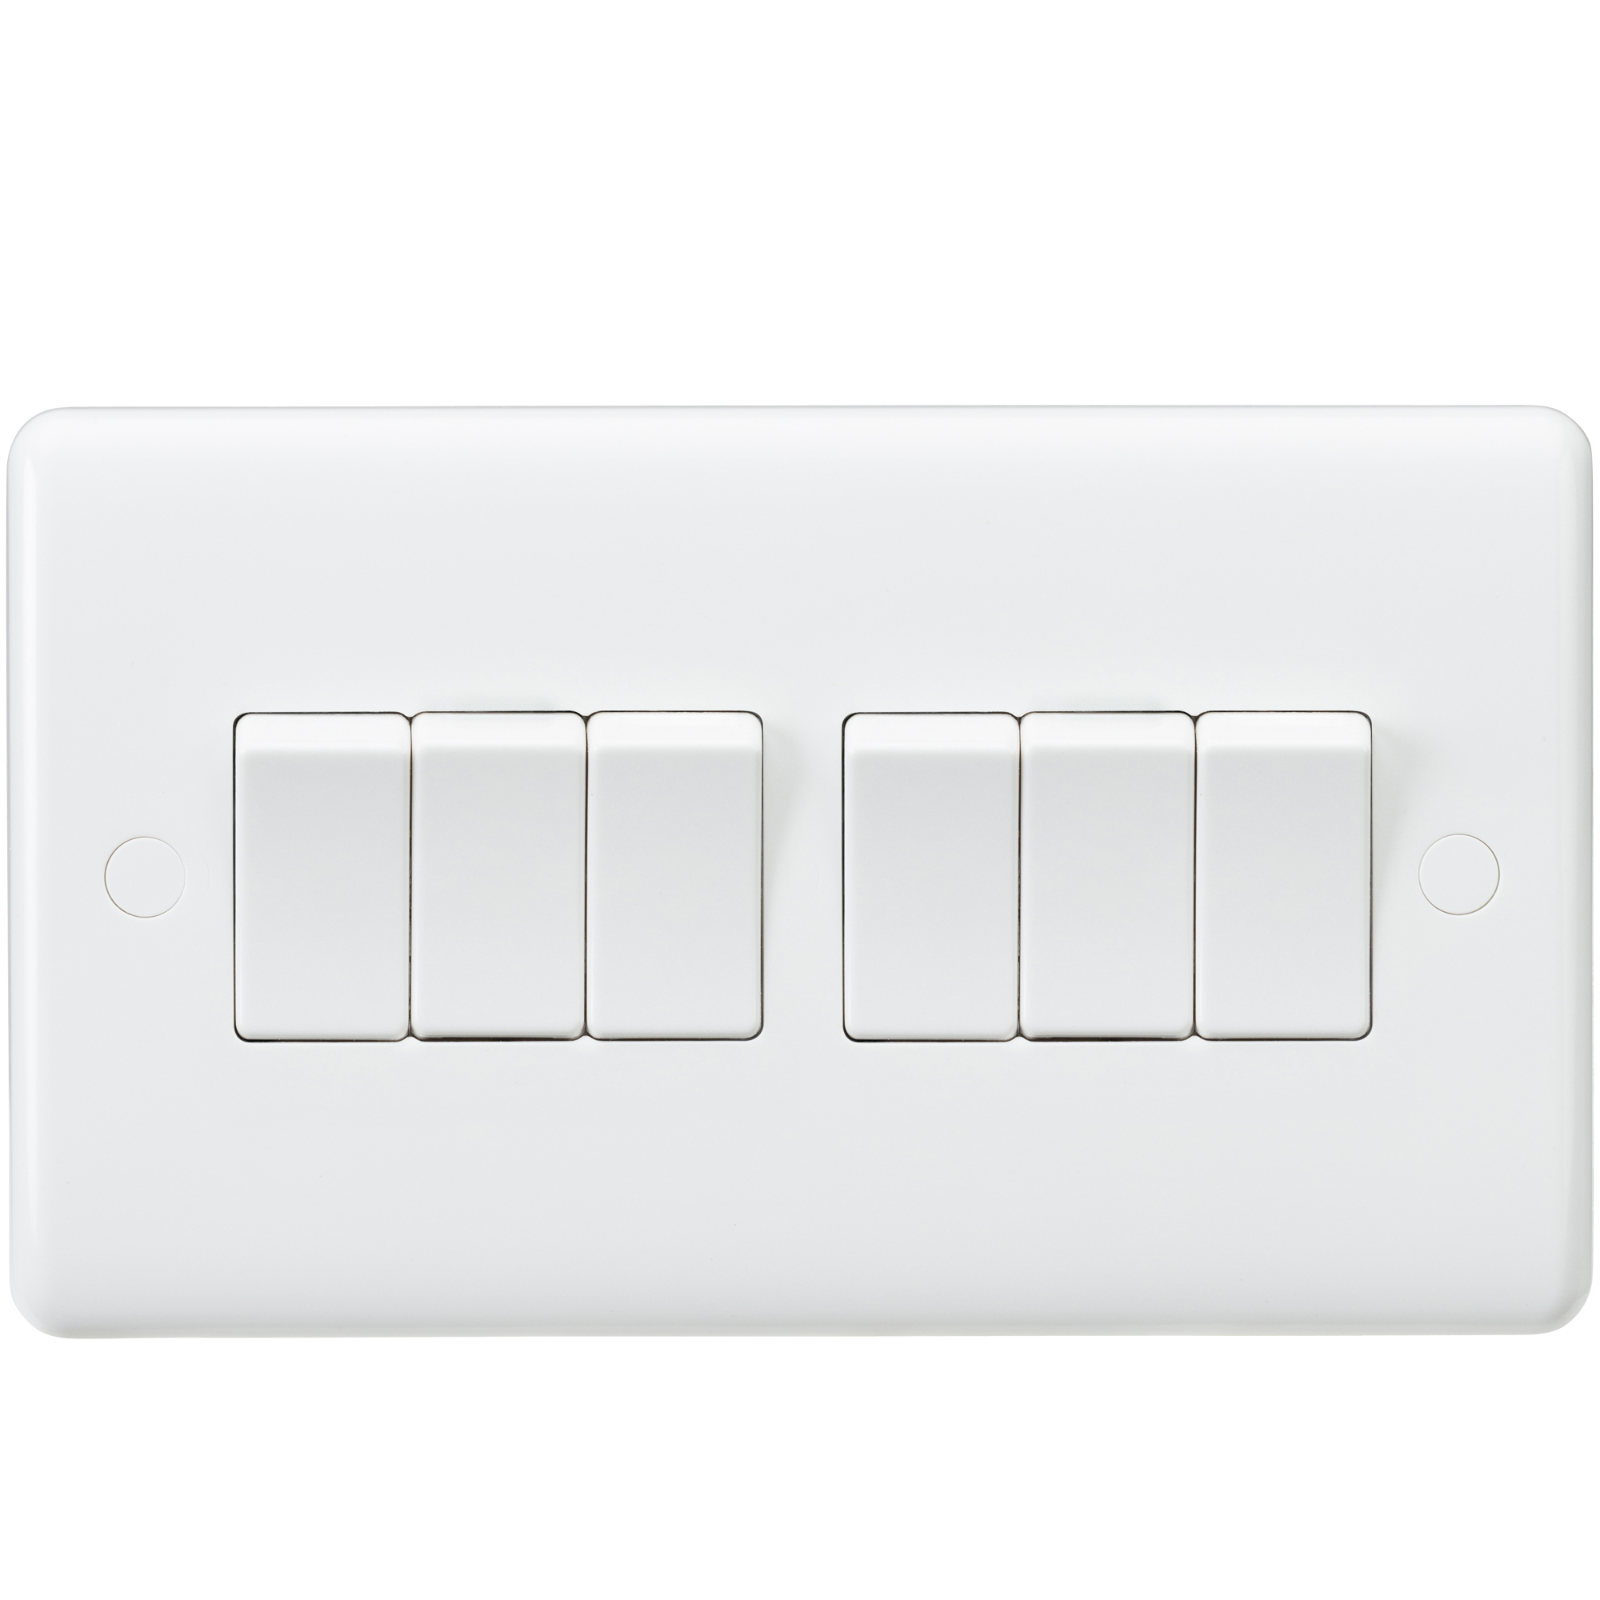 White Curved Edge Wiring Accessories Socket Switch Usb Spur Dimmer Light Media Modular